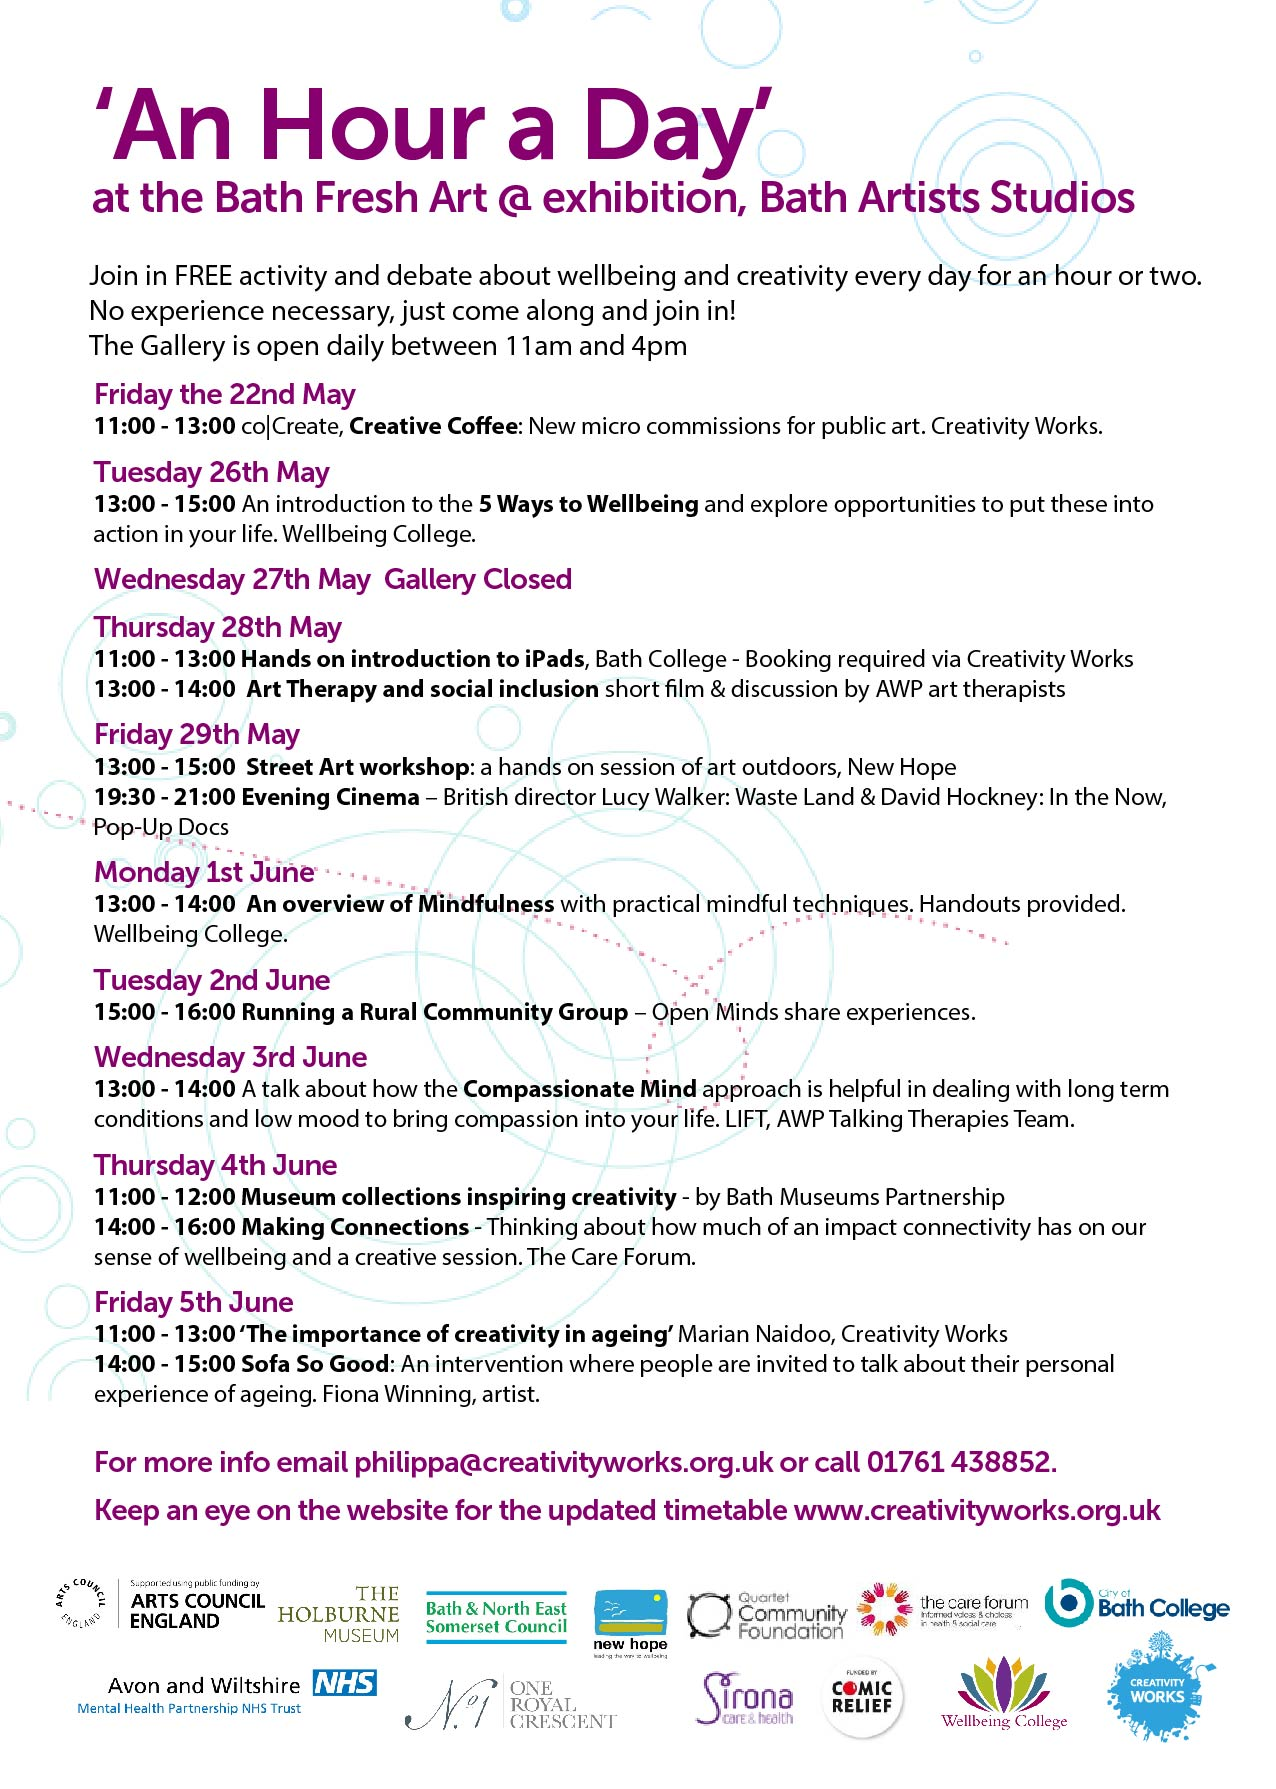 An Hour A Day Of Free Wellbeing Activities